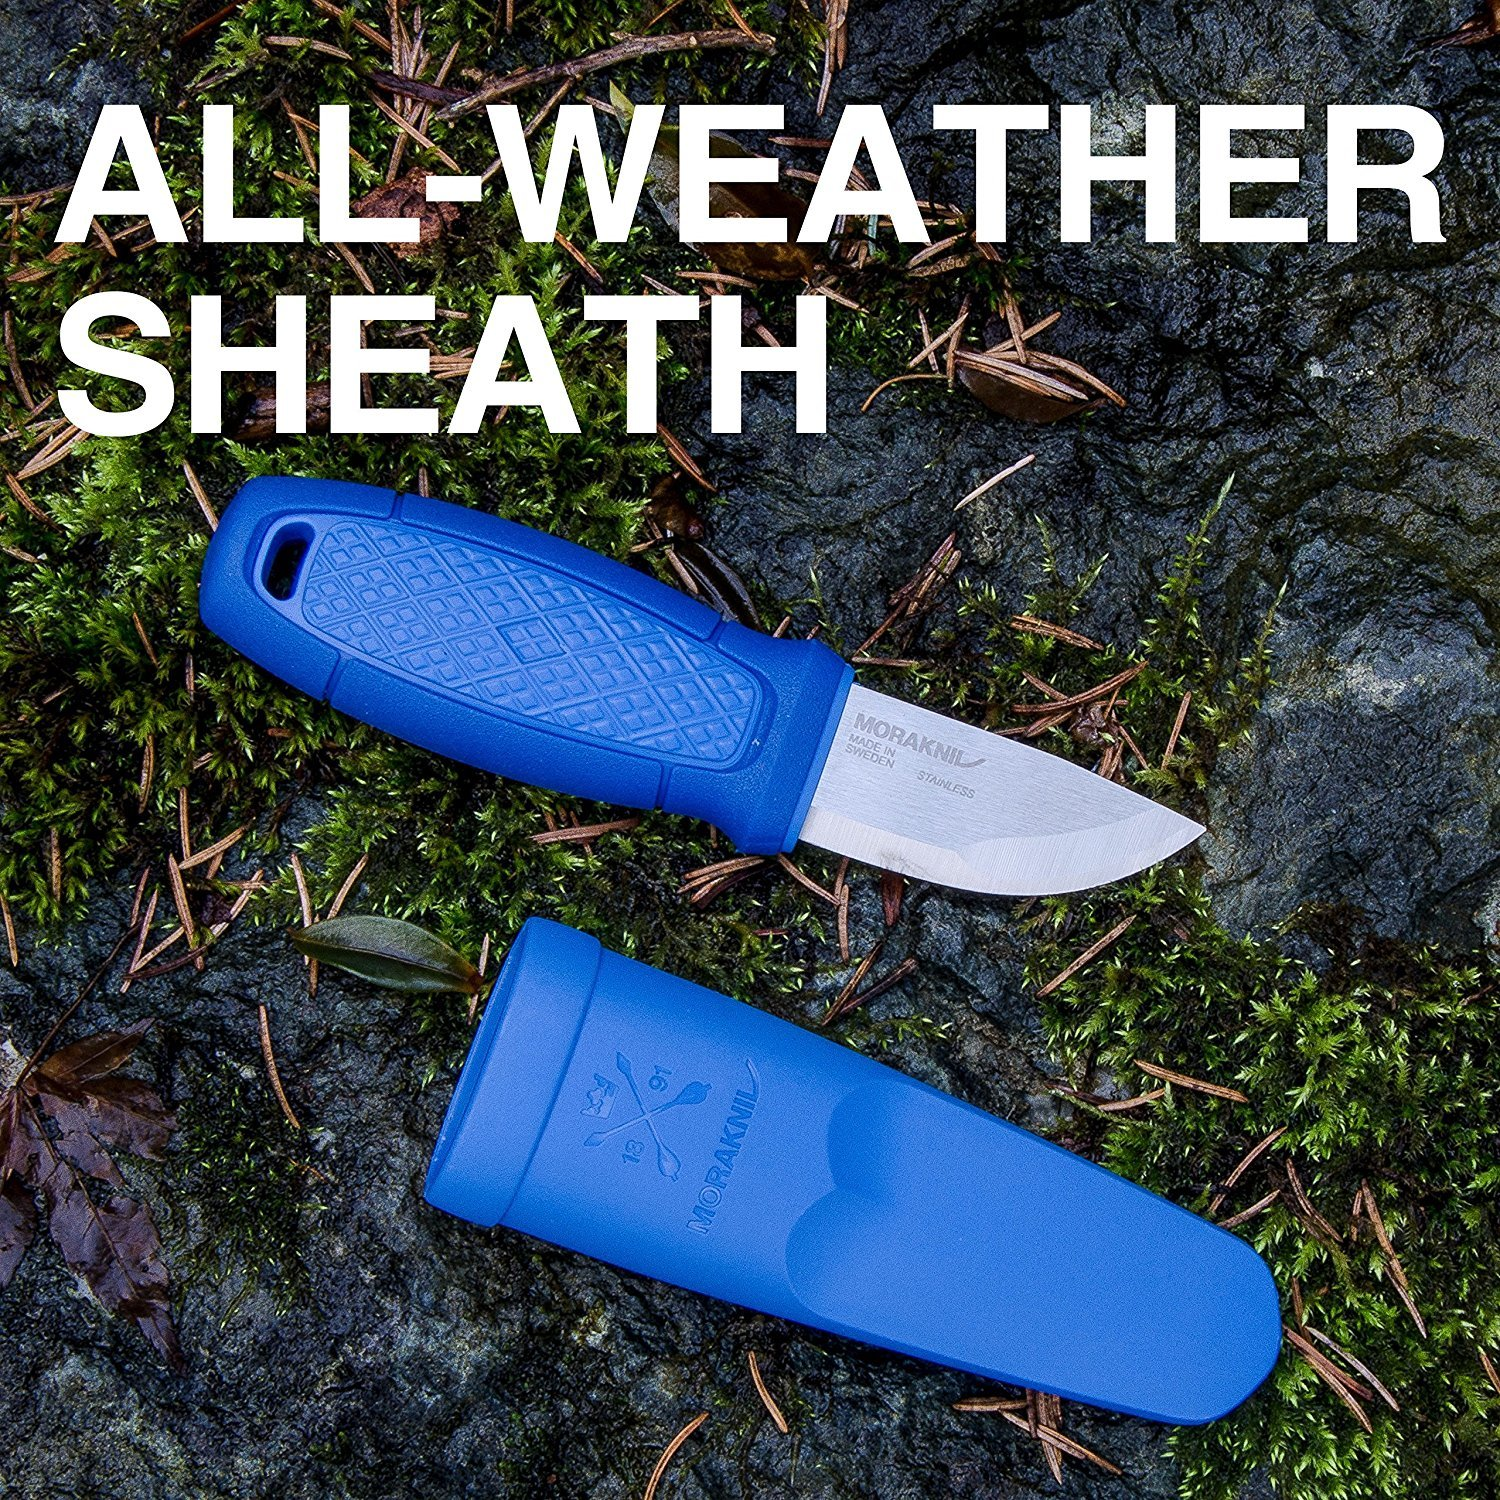 Morakniv Eldris Fixed-Blade Pocket-Sized Knife with Sandvik Stainless Steel Blade and Plastic Sheath, Blue, 2.2 Inch by Morakniv (Image #2)